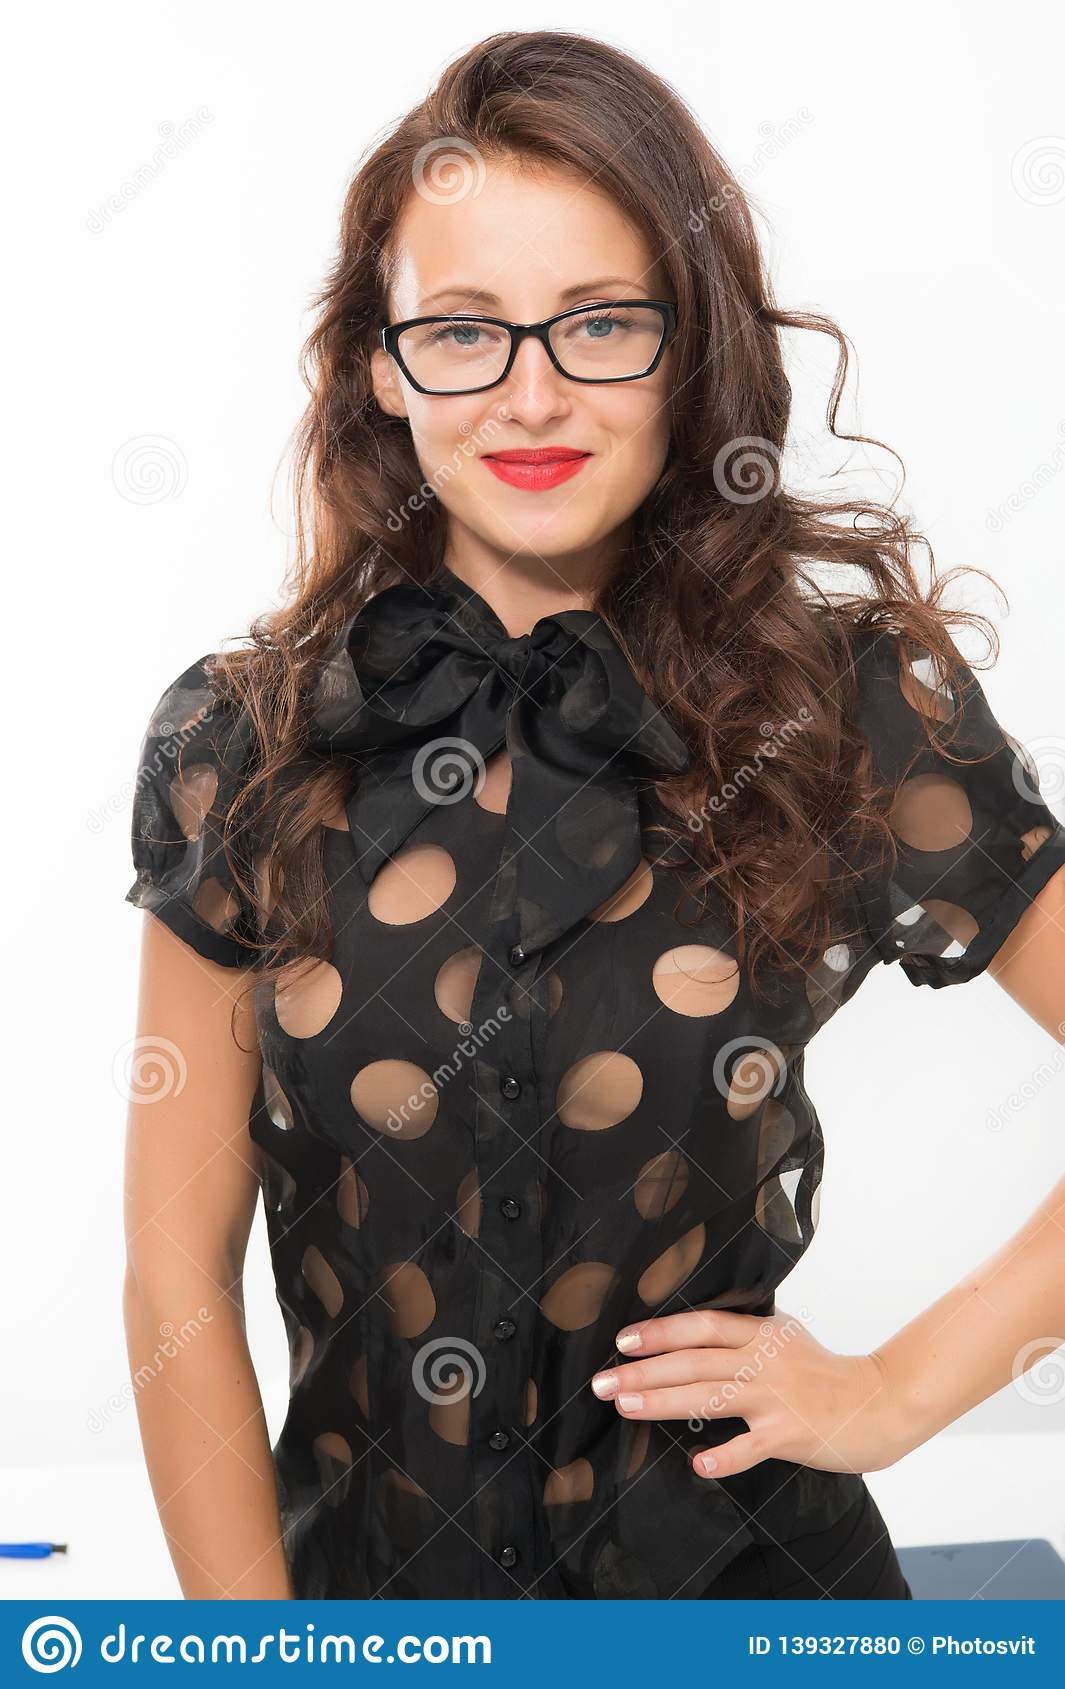 Fashion and beauty. businesswoman. Pretty school teacher or student. Back to school. Girl with red lips in glasses